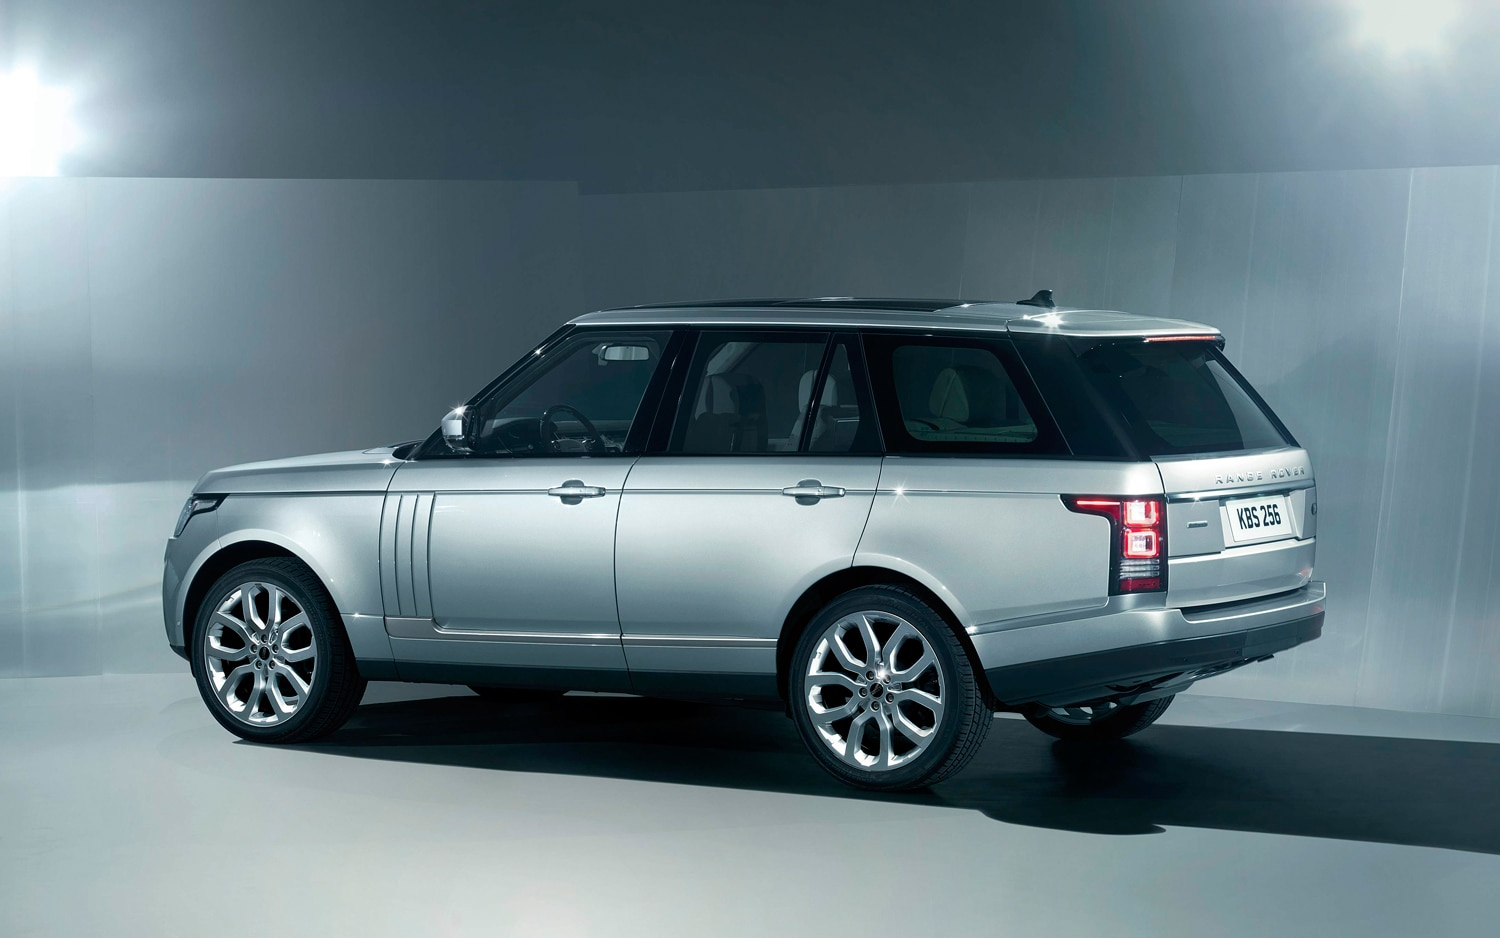 2013 Land Rover Range Rover Rear Three Quarter